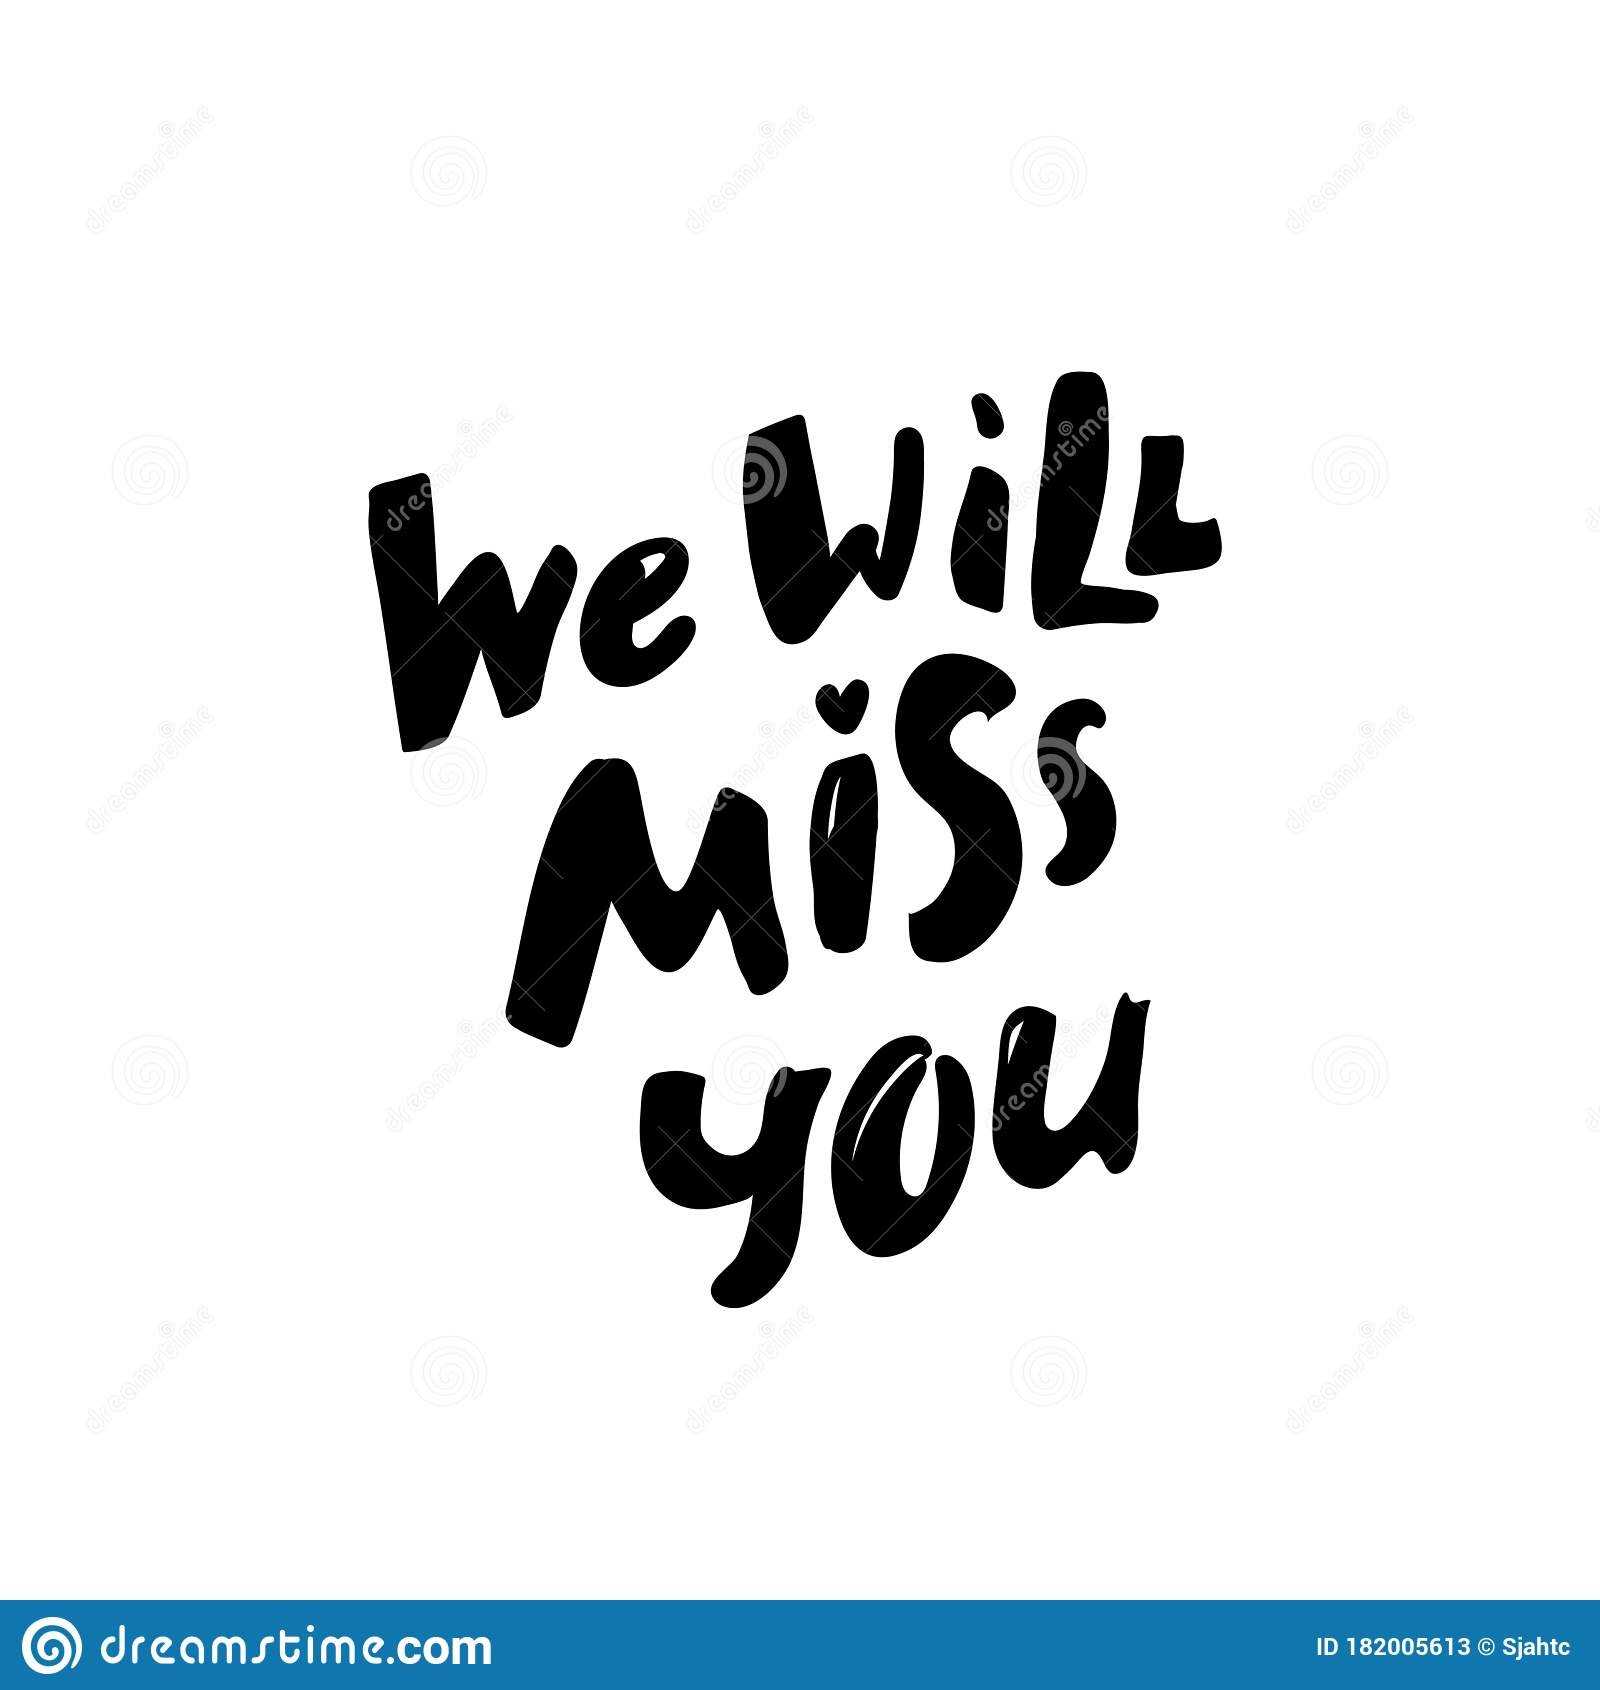 To miss we are you going I'll miss